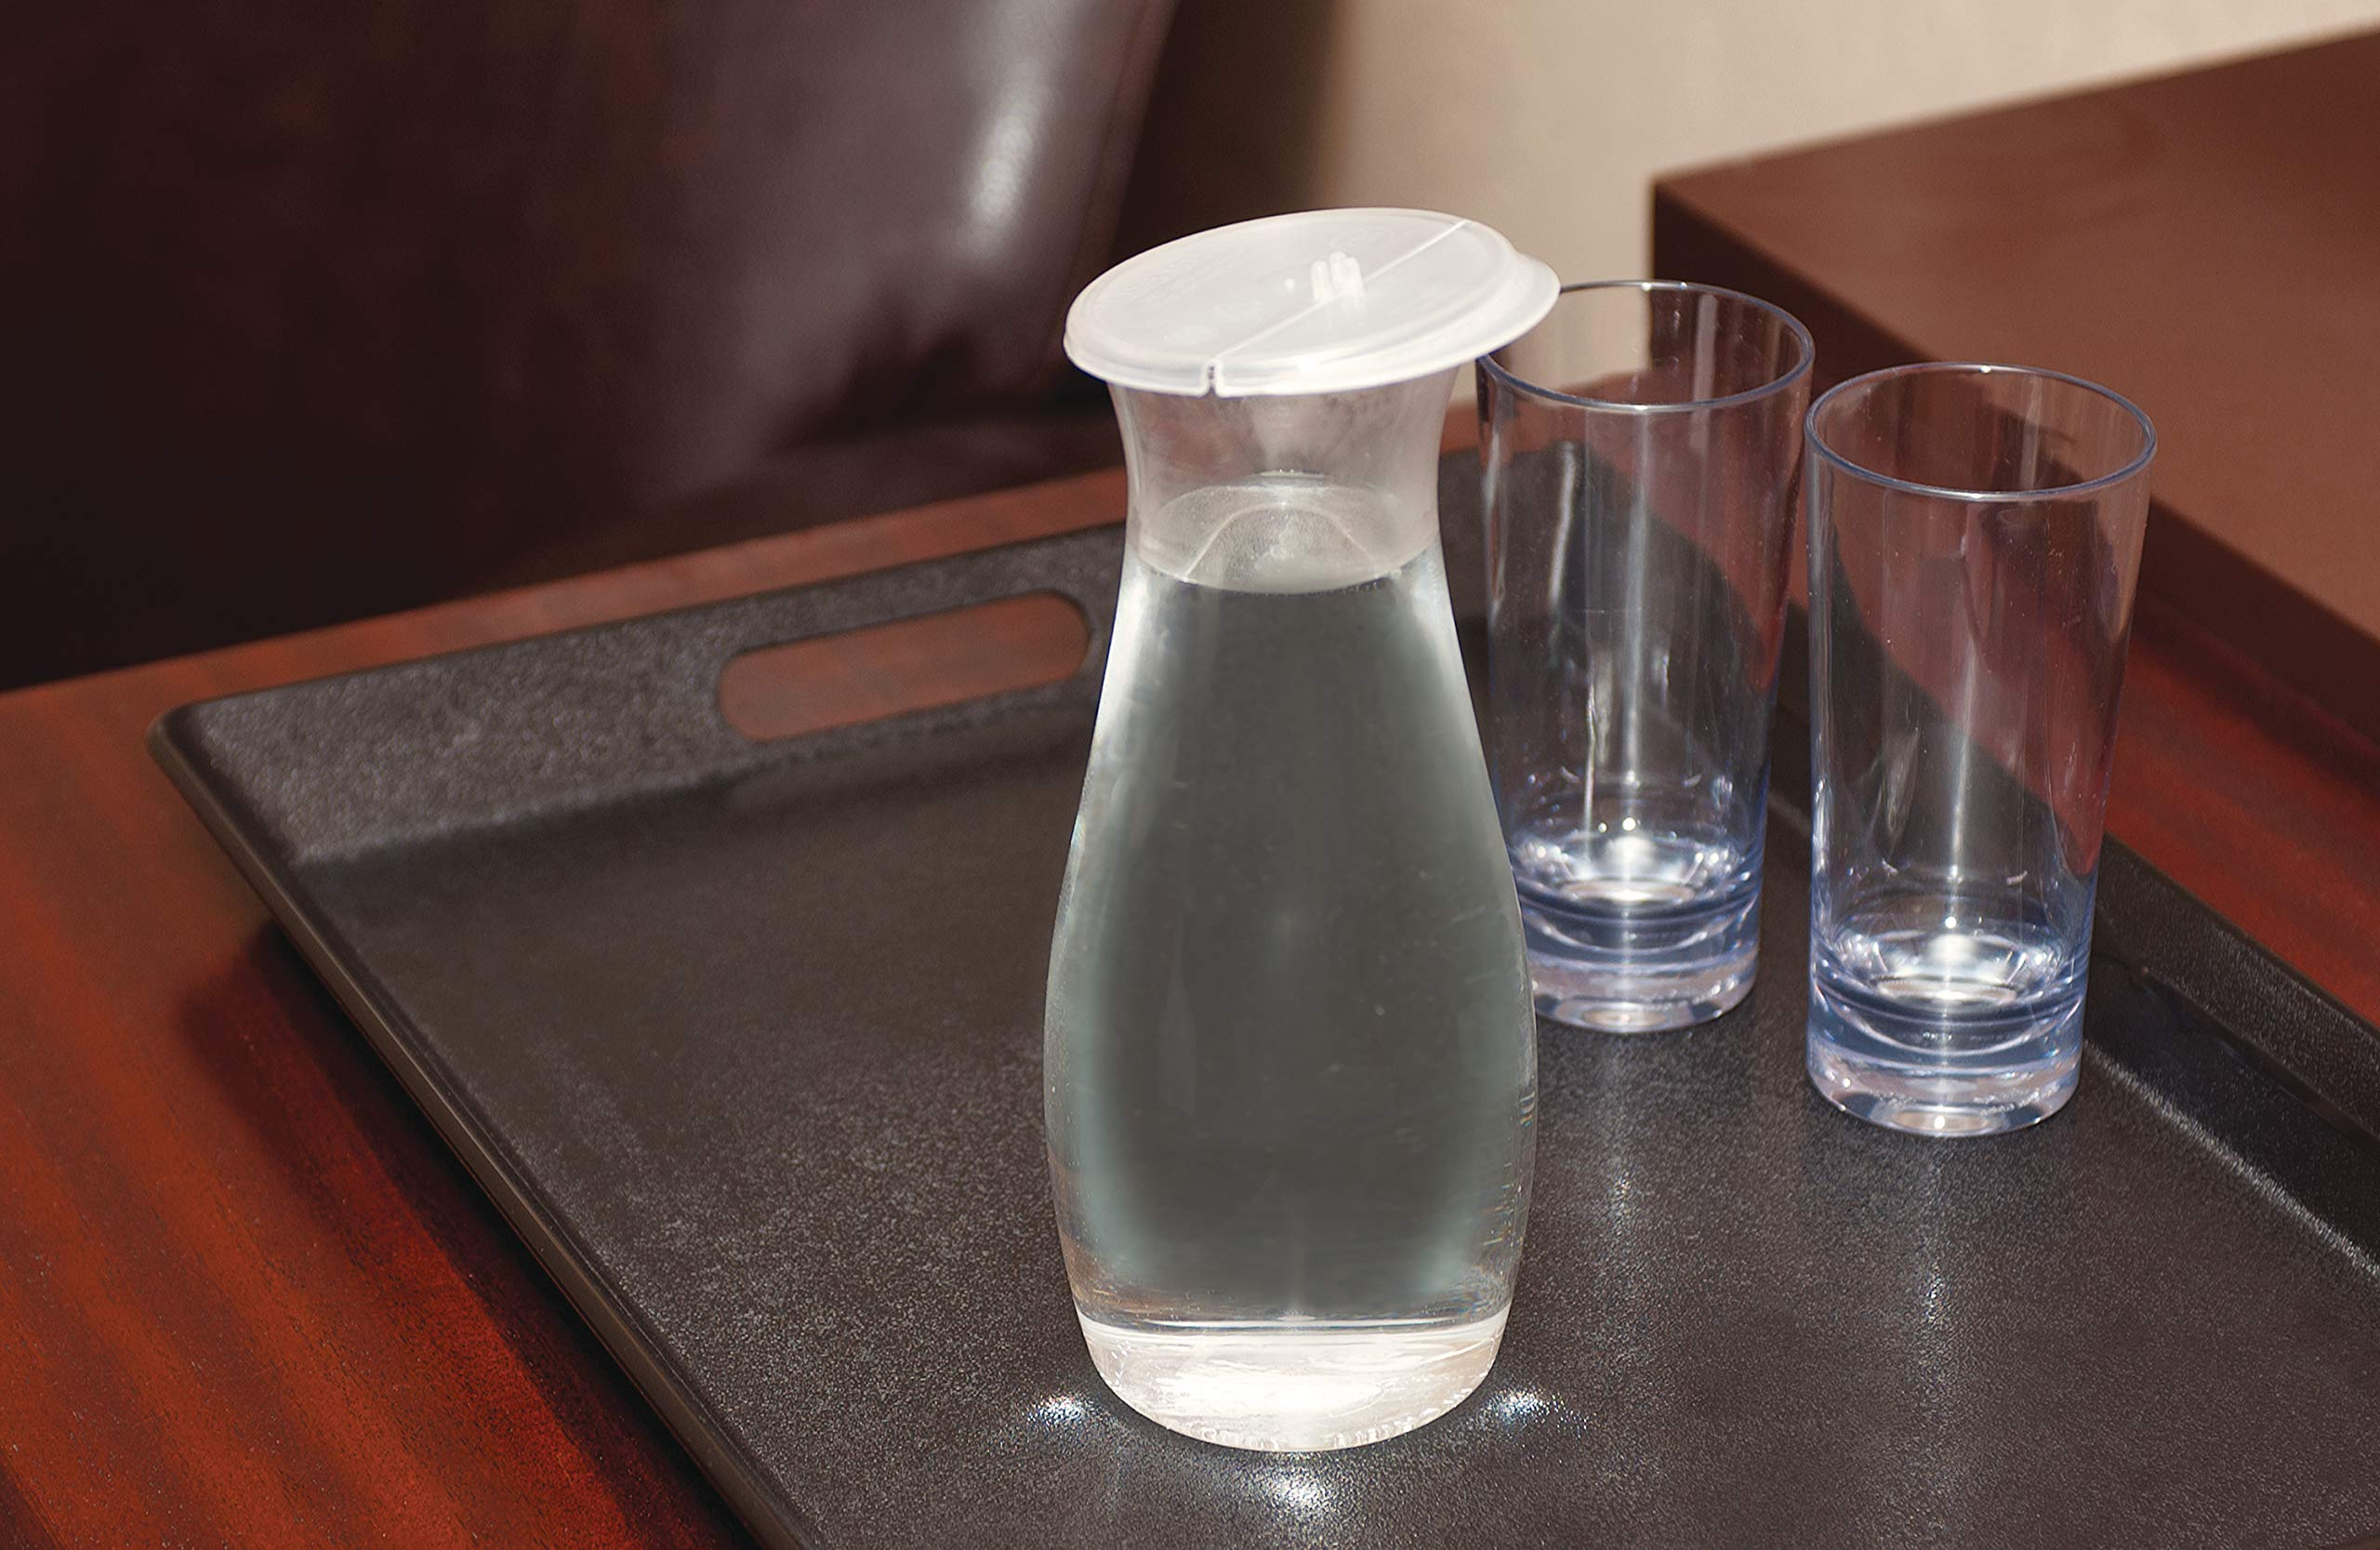 Carlisle 7090207 Cascata Carafe Juice Jar Beverage Decanter Only, Plastic, 1 L, Clear by Carlisle (Image #10)